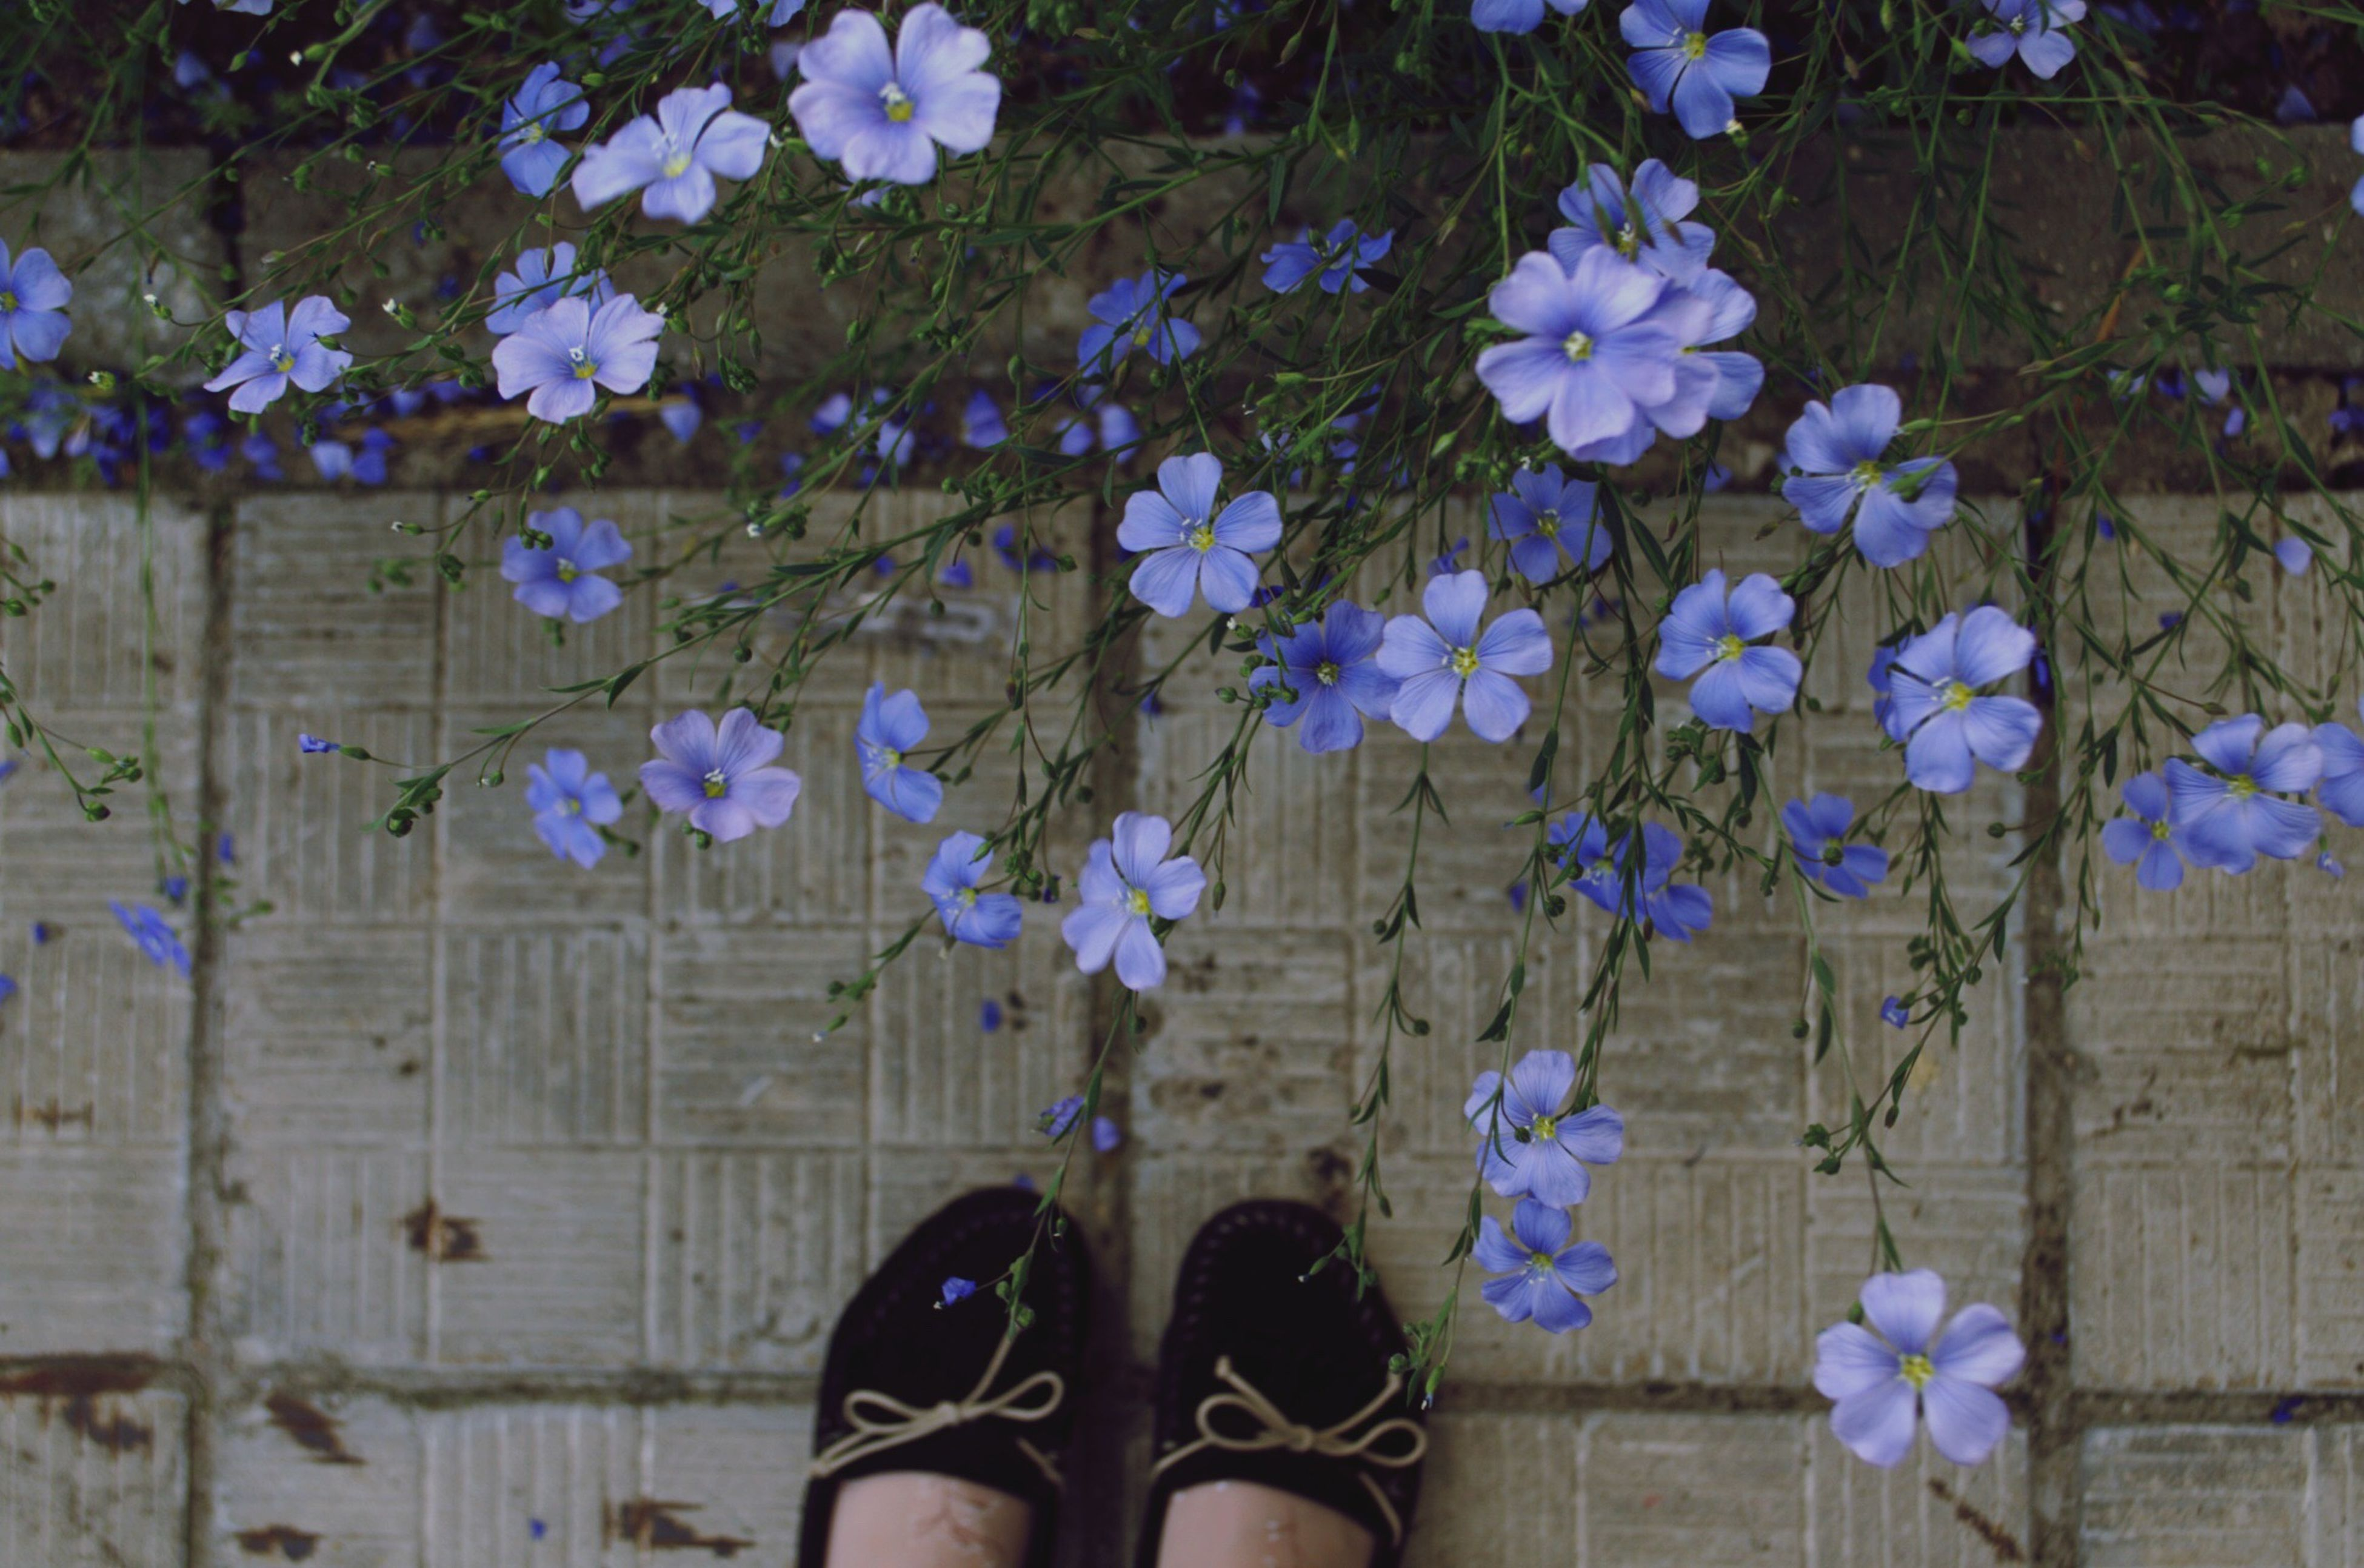 flower, wood - material, low section, shoe, plant, leaf, blue, growth, person, wooden, fragility, one person, plank, purple, nature, outdoors, high angle view, wood, day, standing